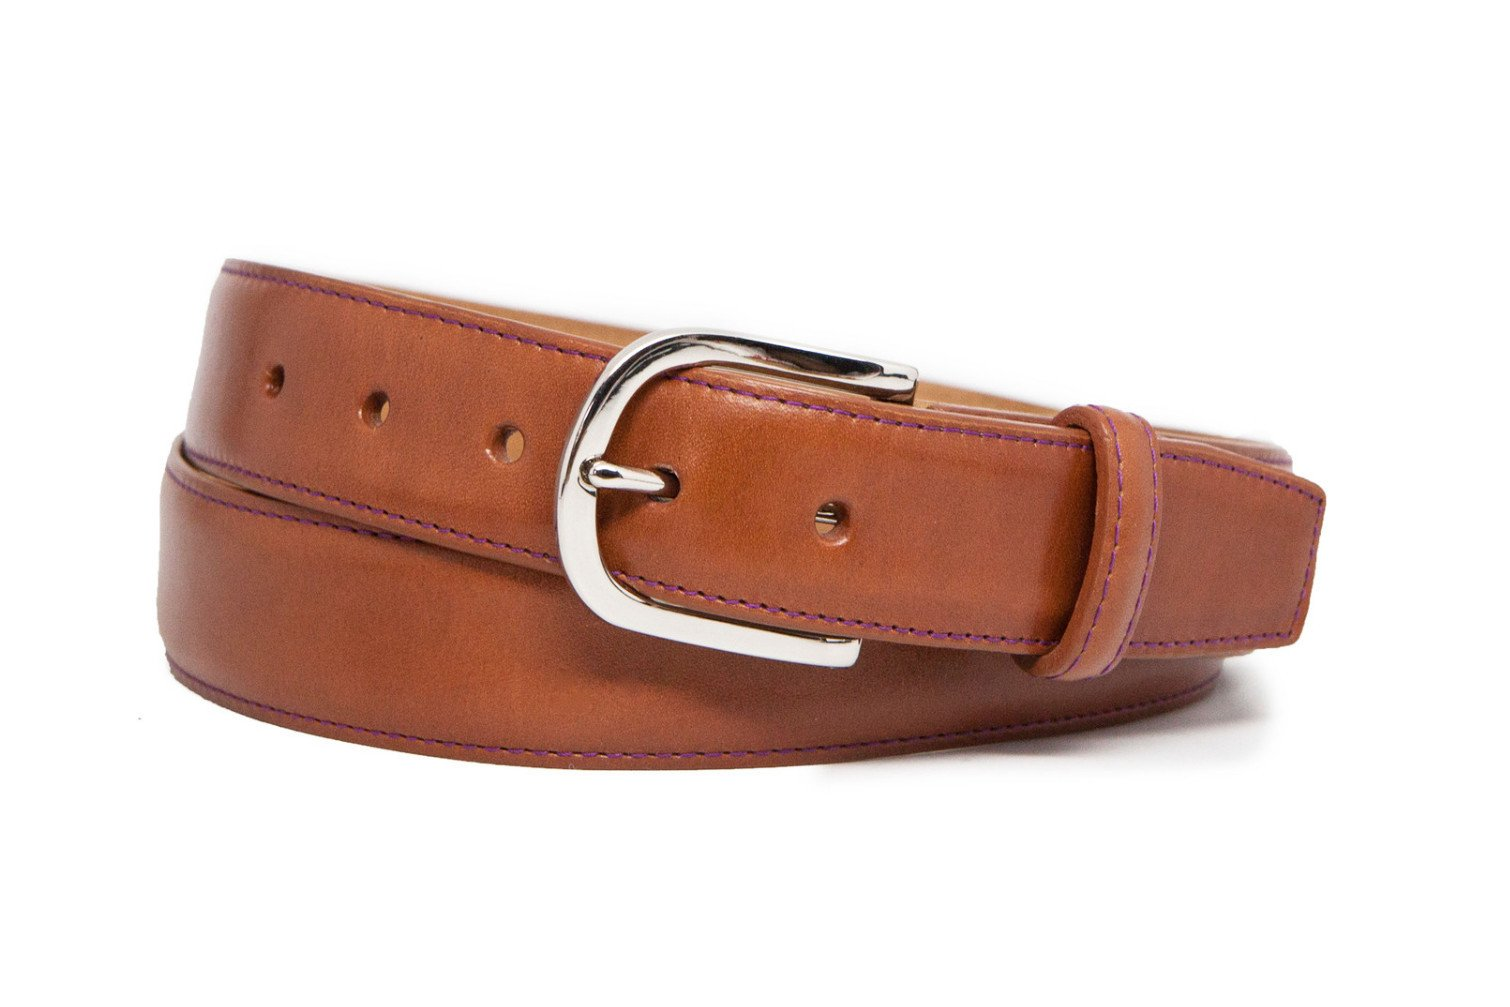 7e26772ed318 Cobbler Union: 🆕 Introducing The Brown Museum Calf Belt | Milled